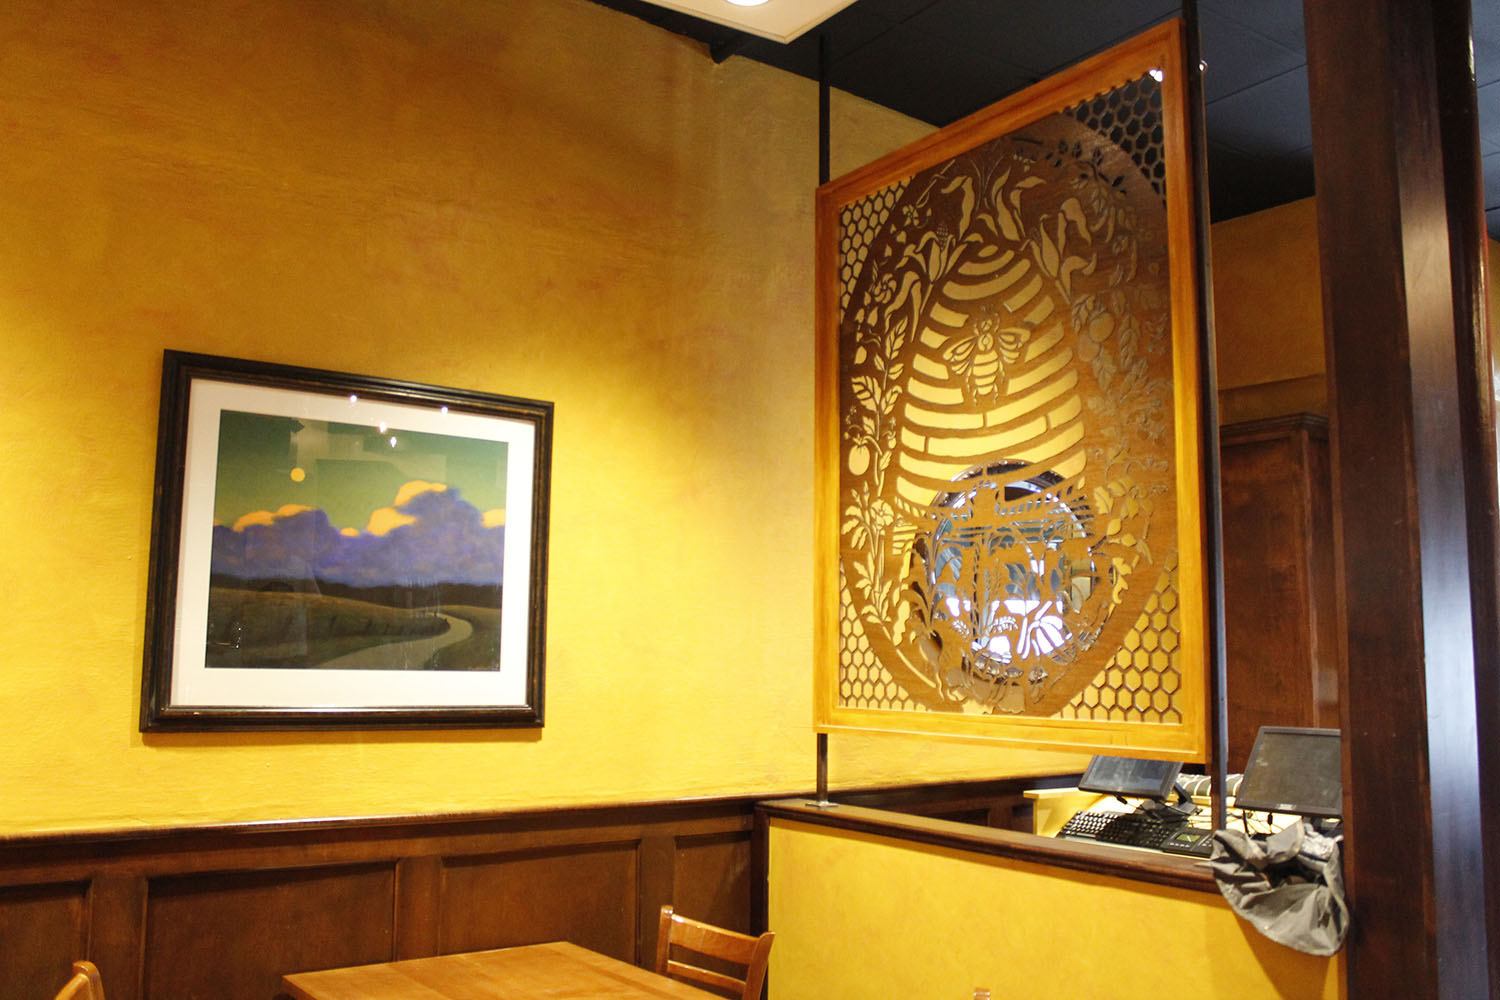 Tupelo Honey strives to use local artists to add to the communal spirit of our restaurant.